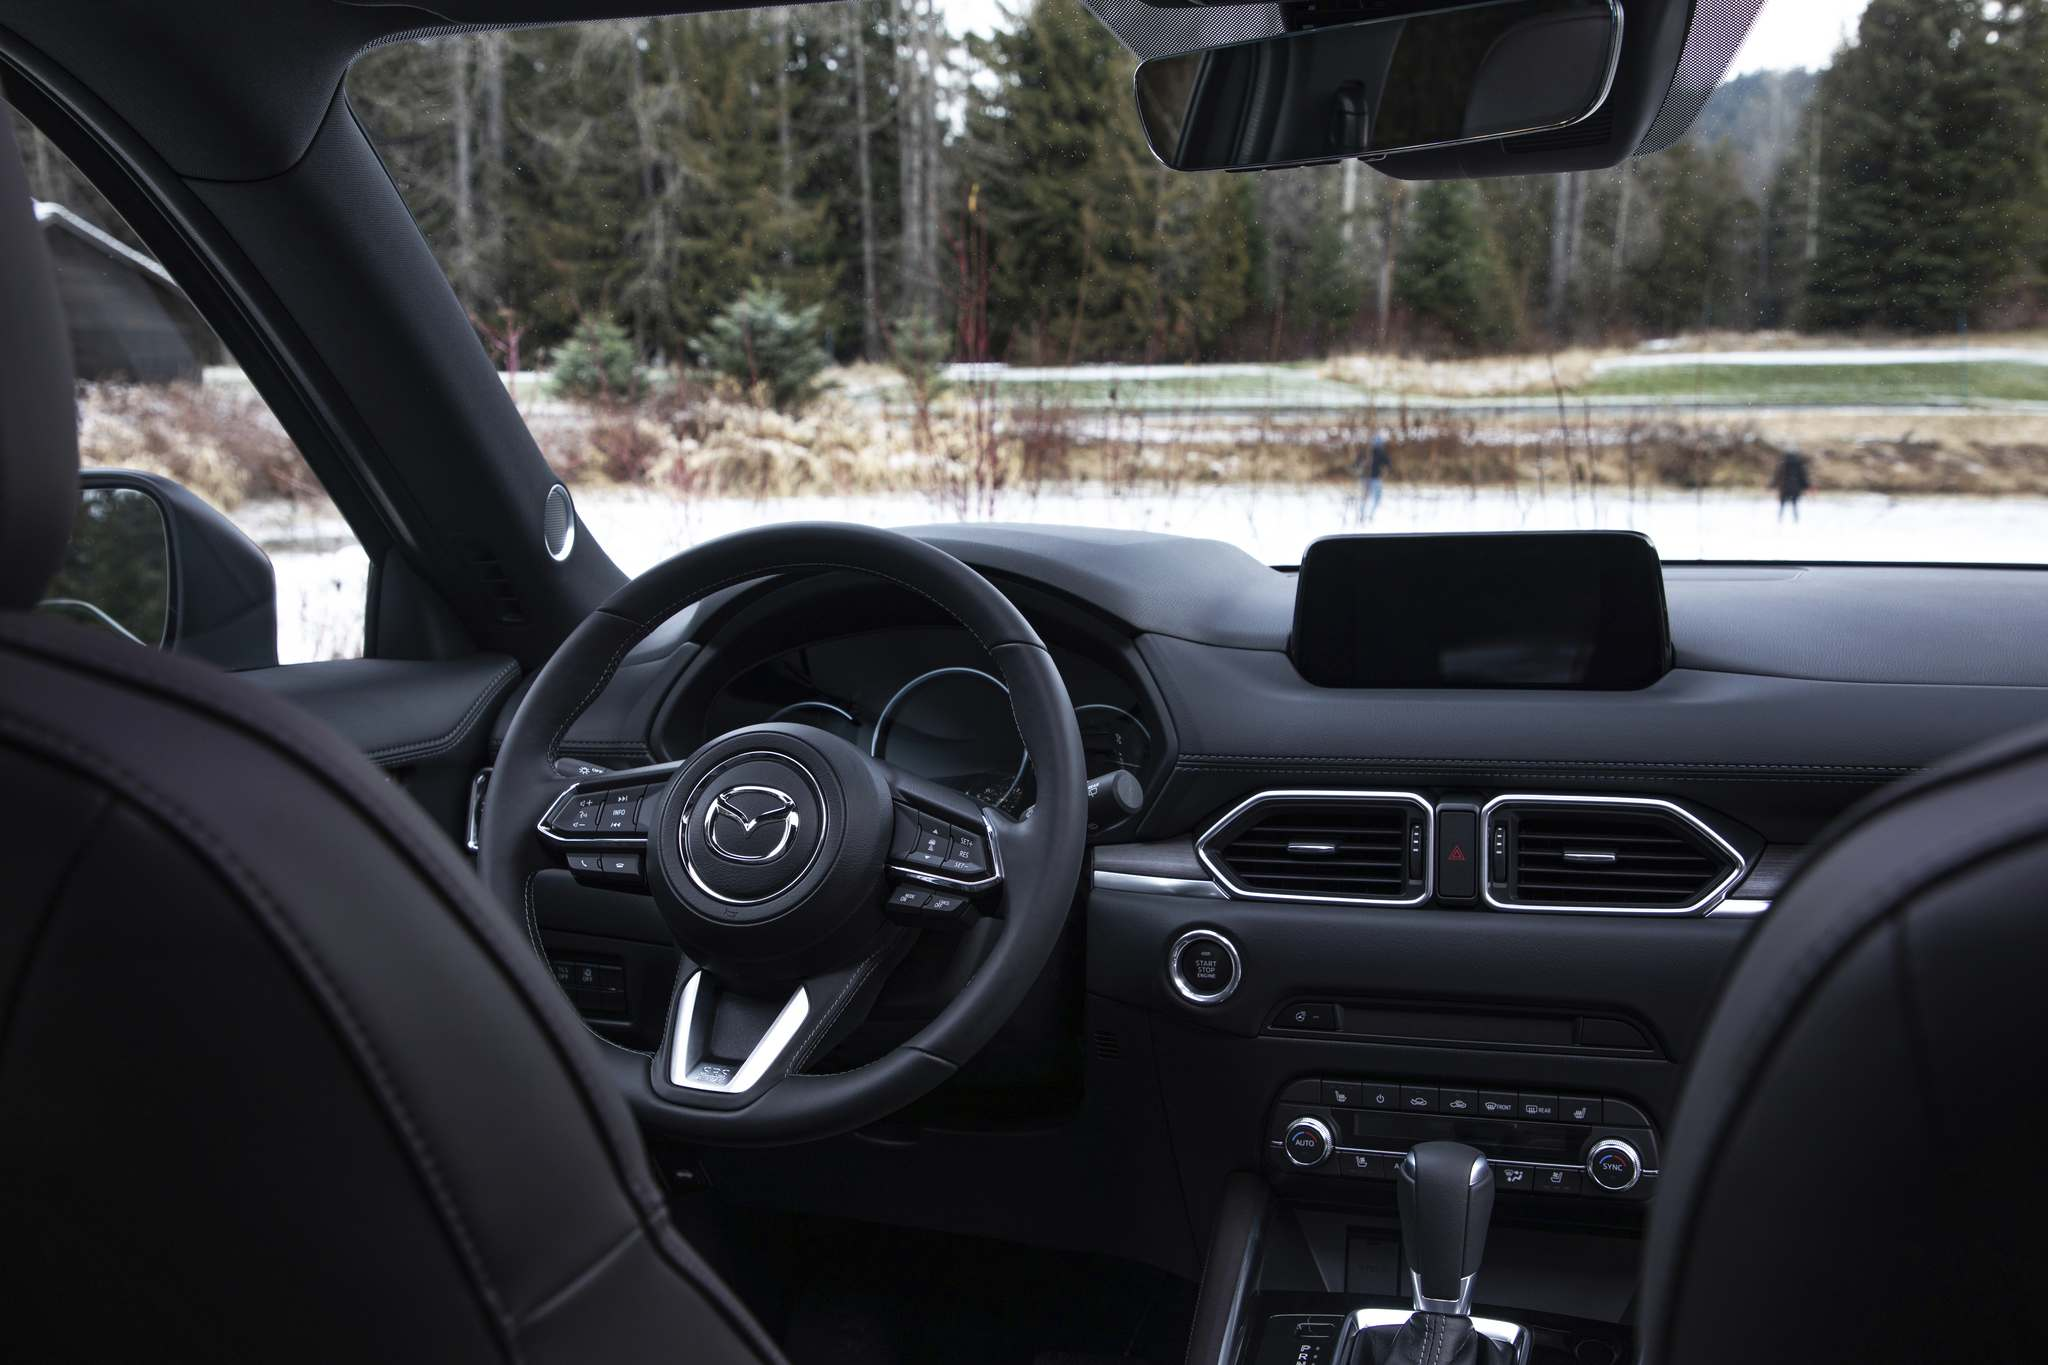 Mazda's interiors are arguably competitive with premium brands.